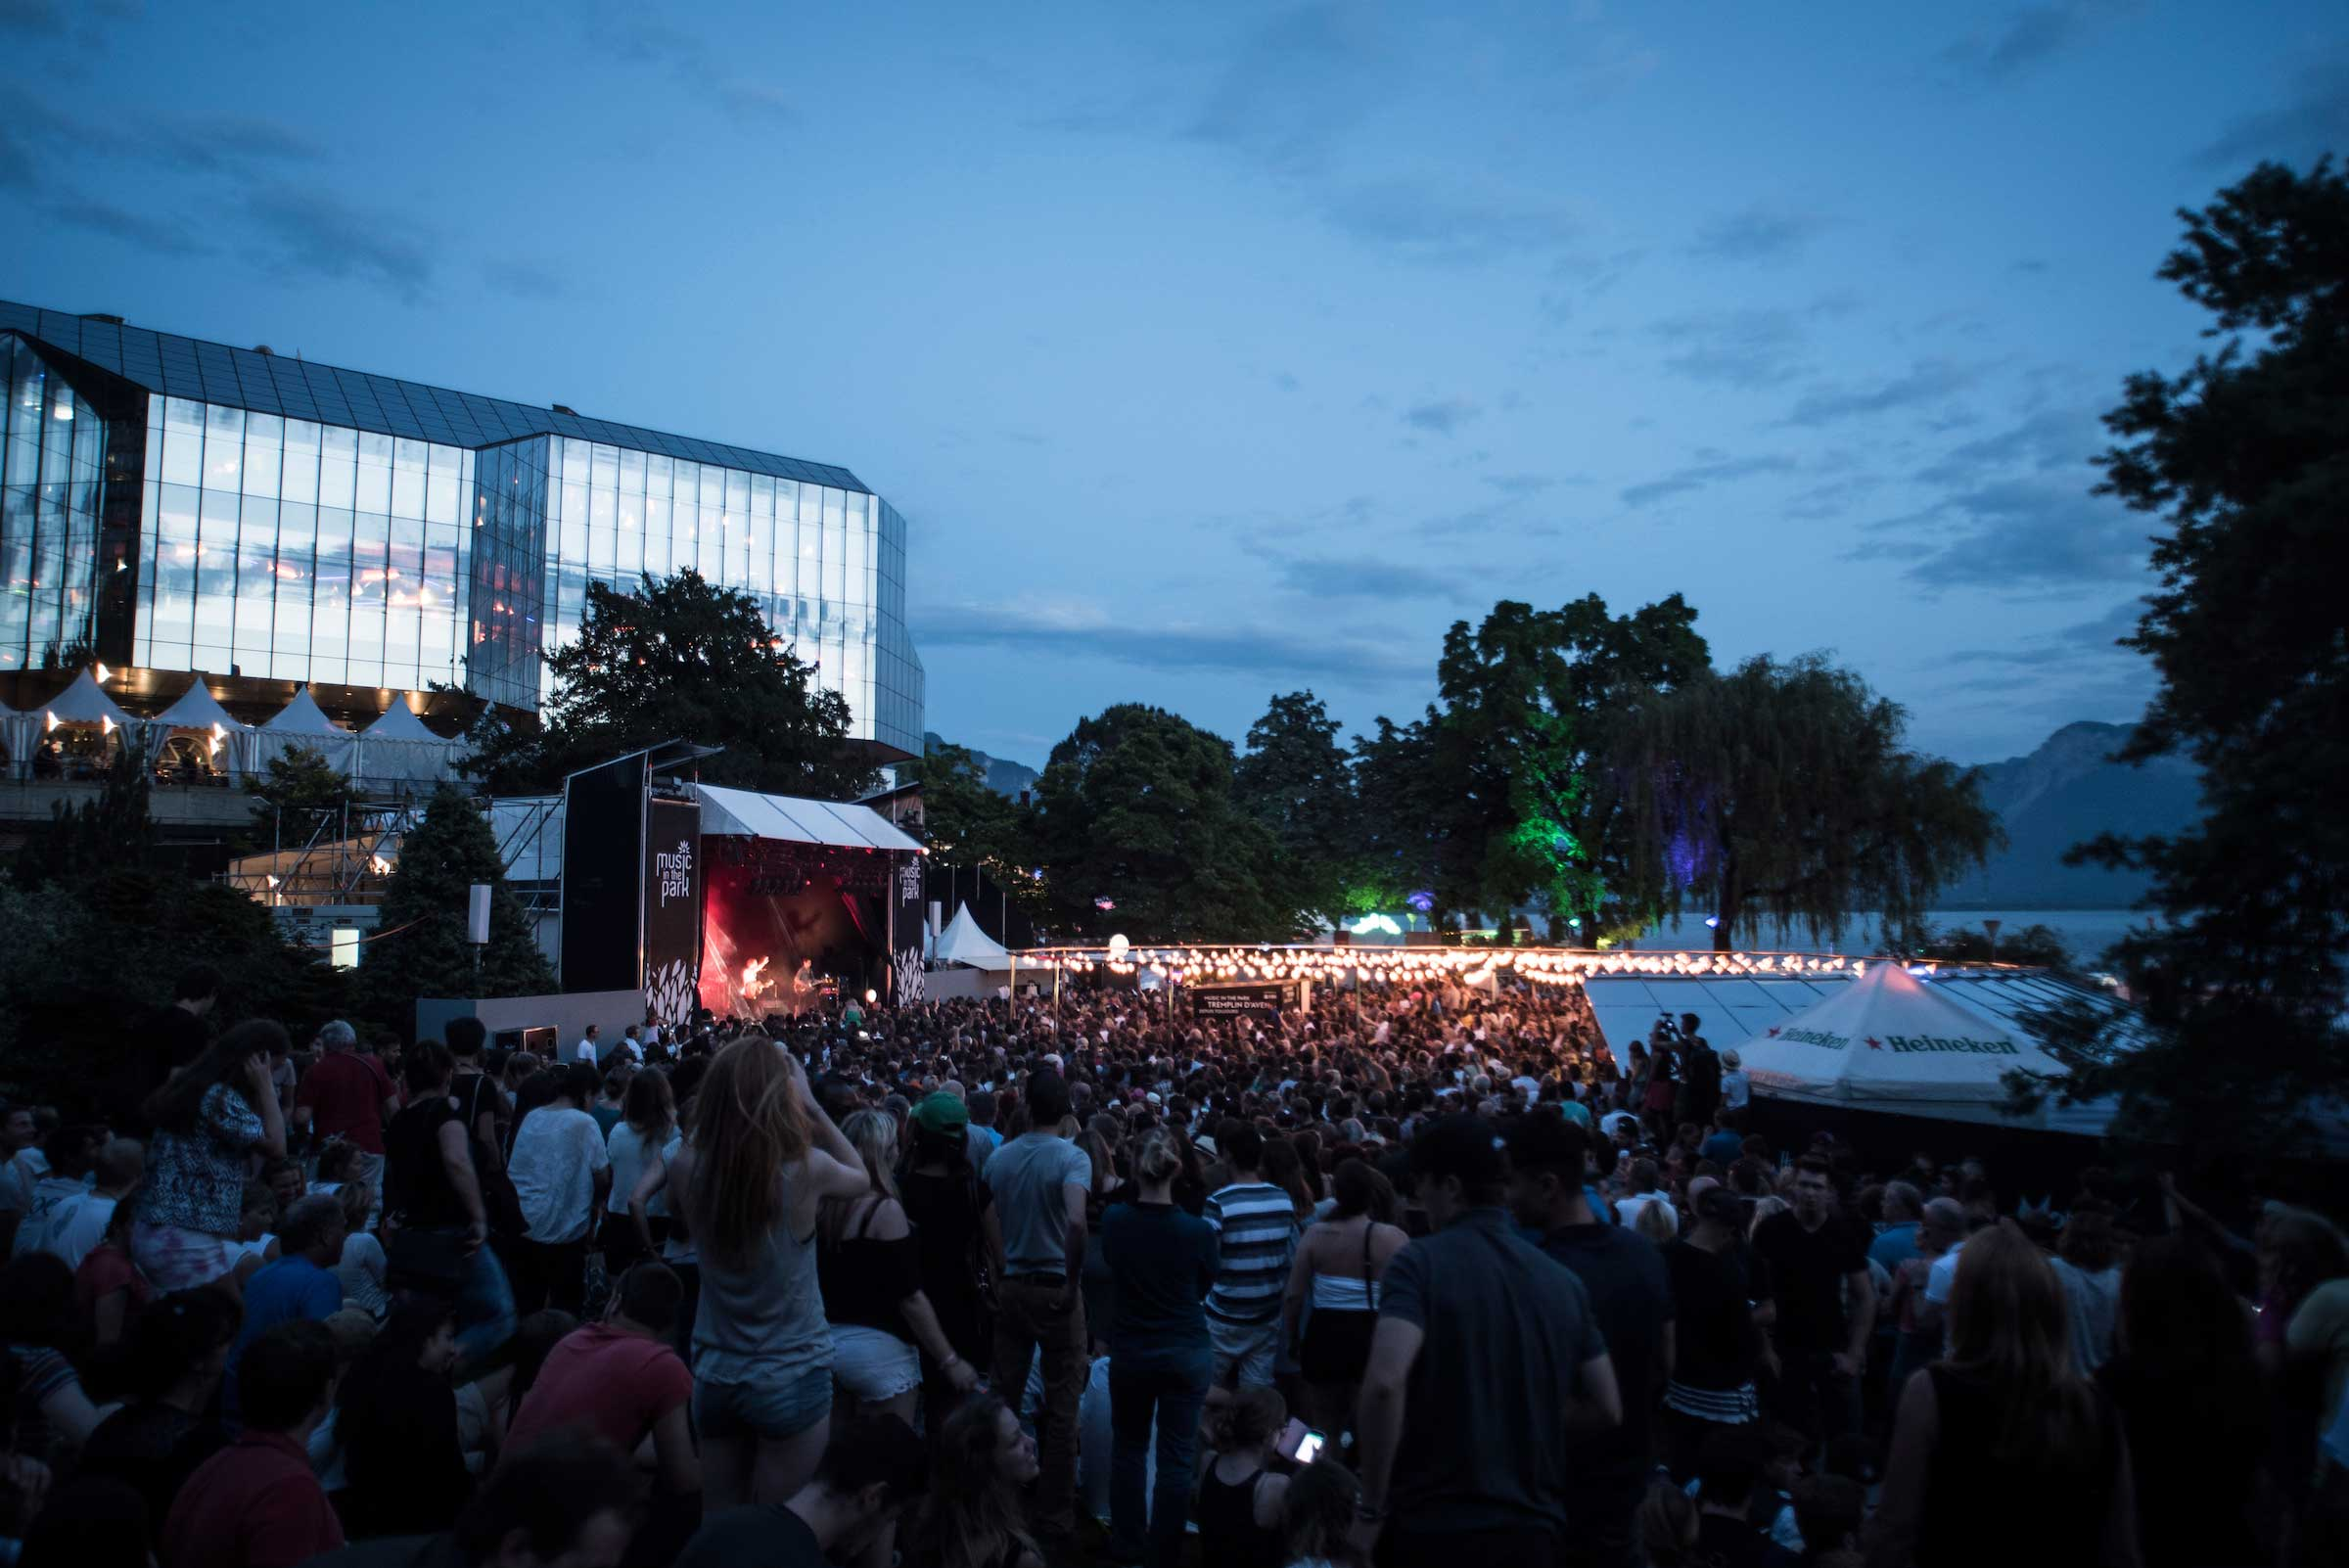 The stage with performers and and the large crowd at Music in the Park , Montreaux Jazz Festival